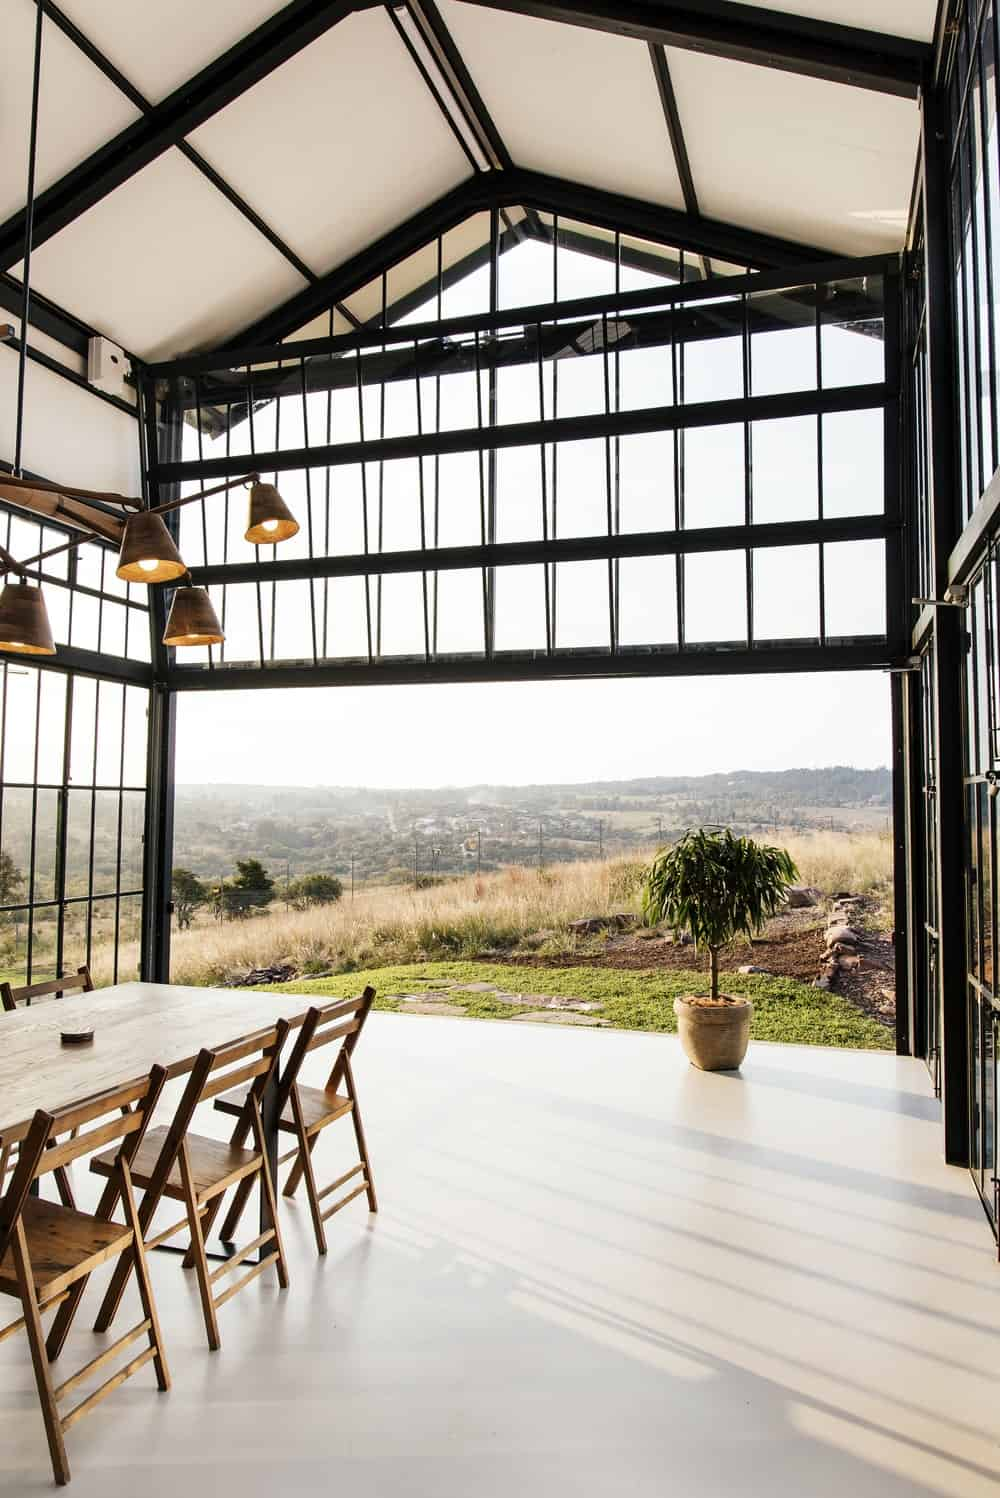 Dining area overlooking the expansive view in The Conservatory designed by Nadine Engelbrecht.